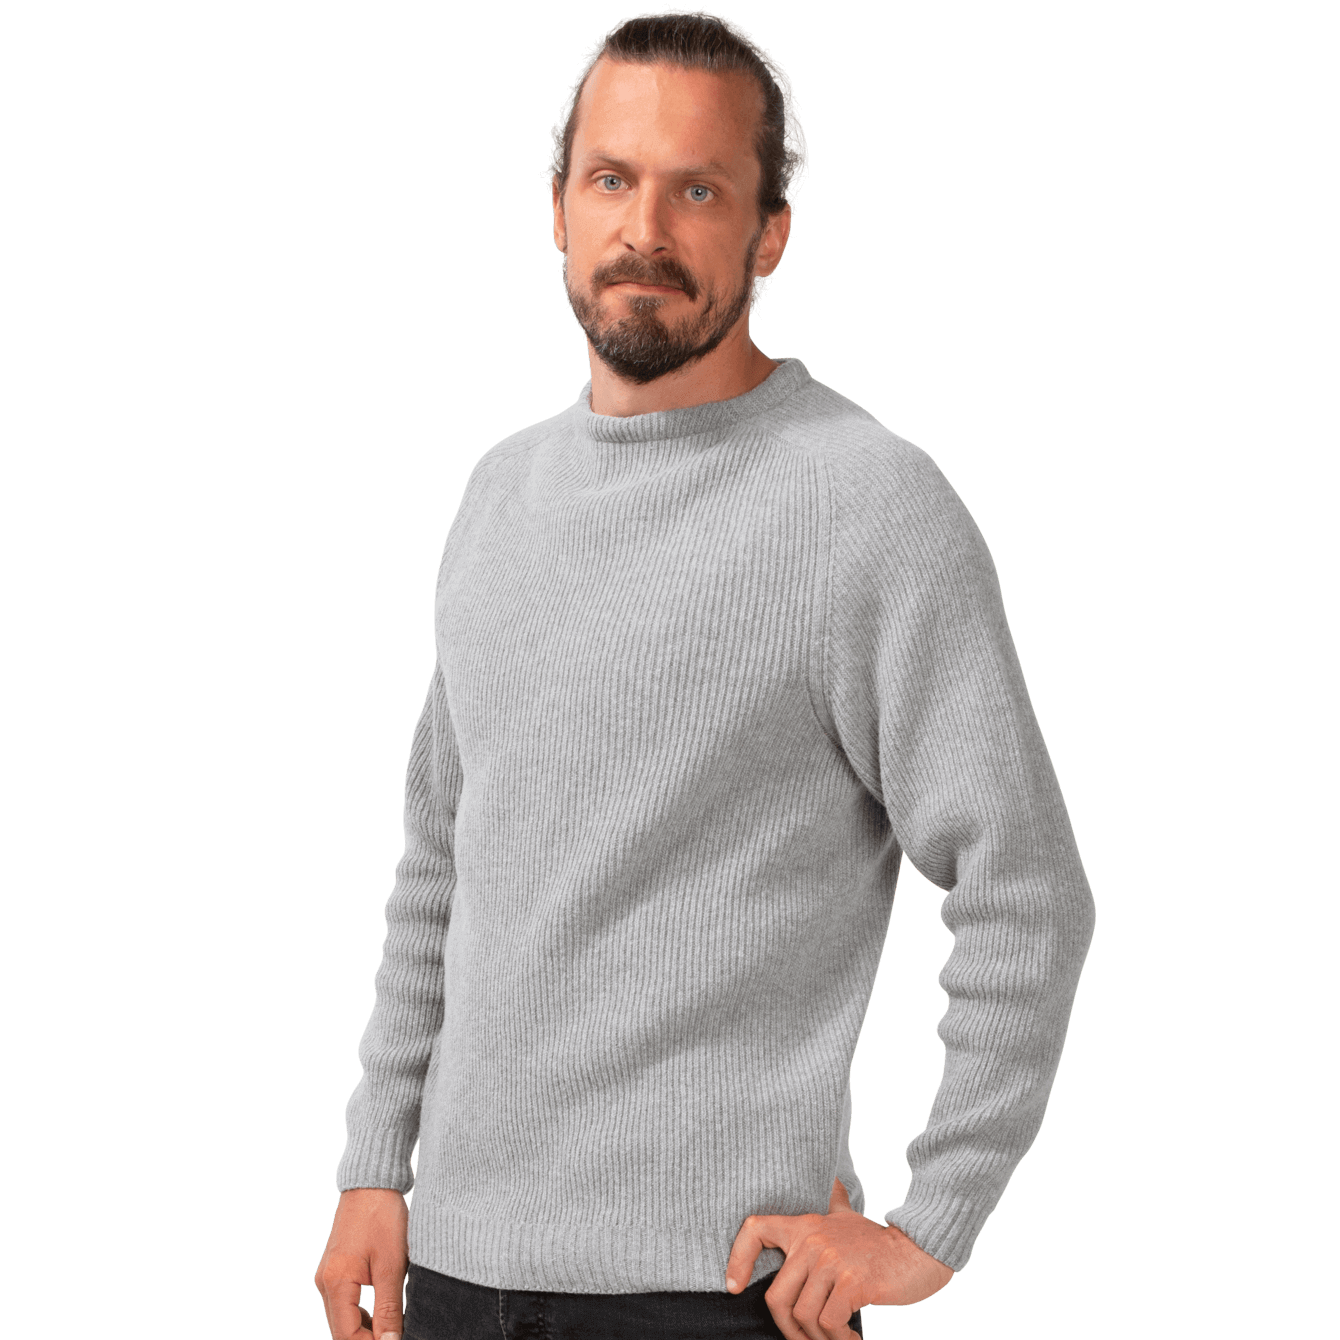 North Outdoor - Men's KASKI Sweater - 100 % Merino Wool - Made in Finland - Weekendbee - sustainable sportswear